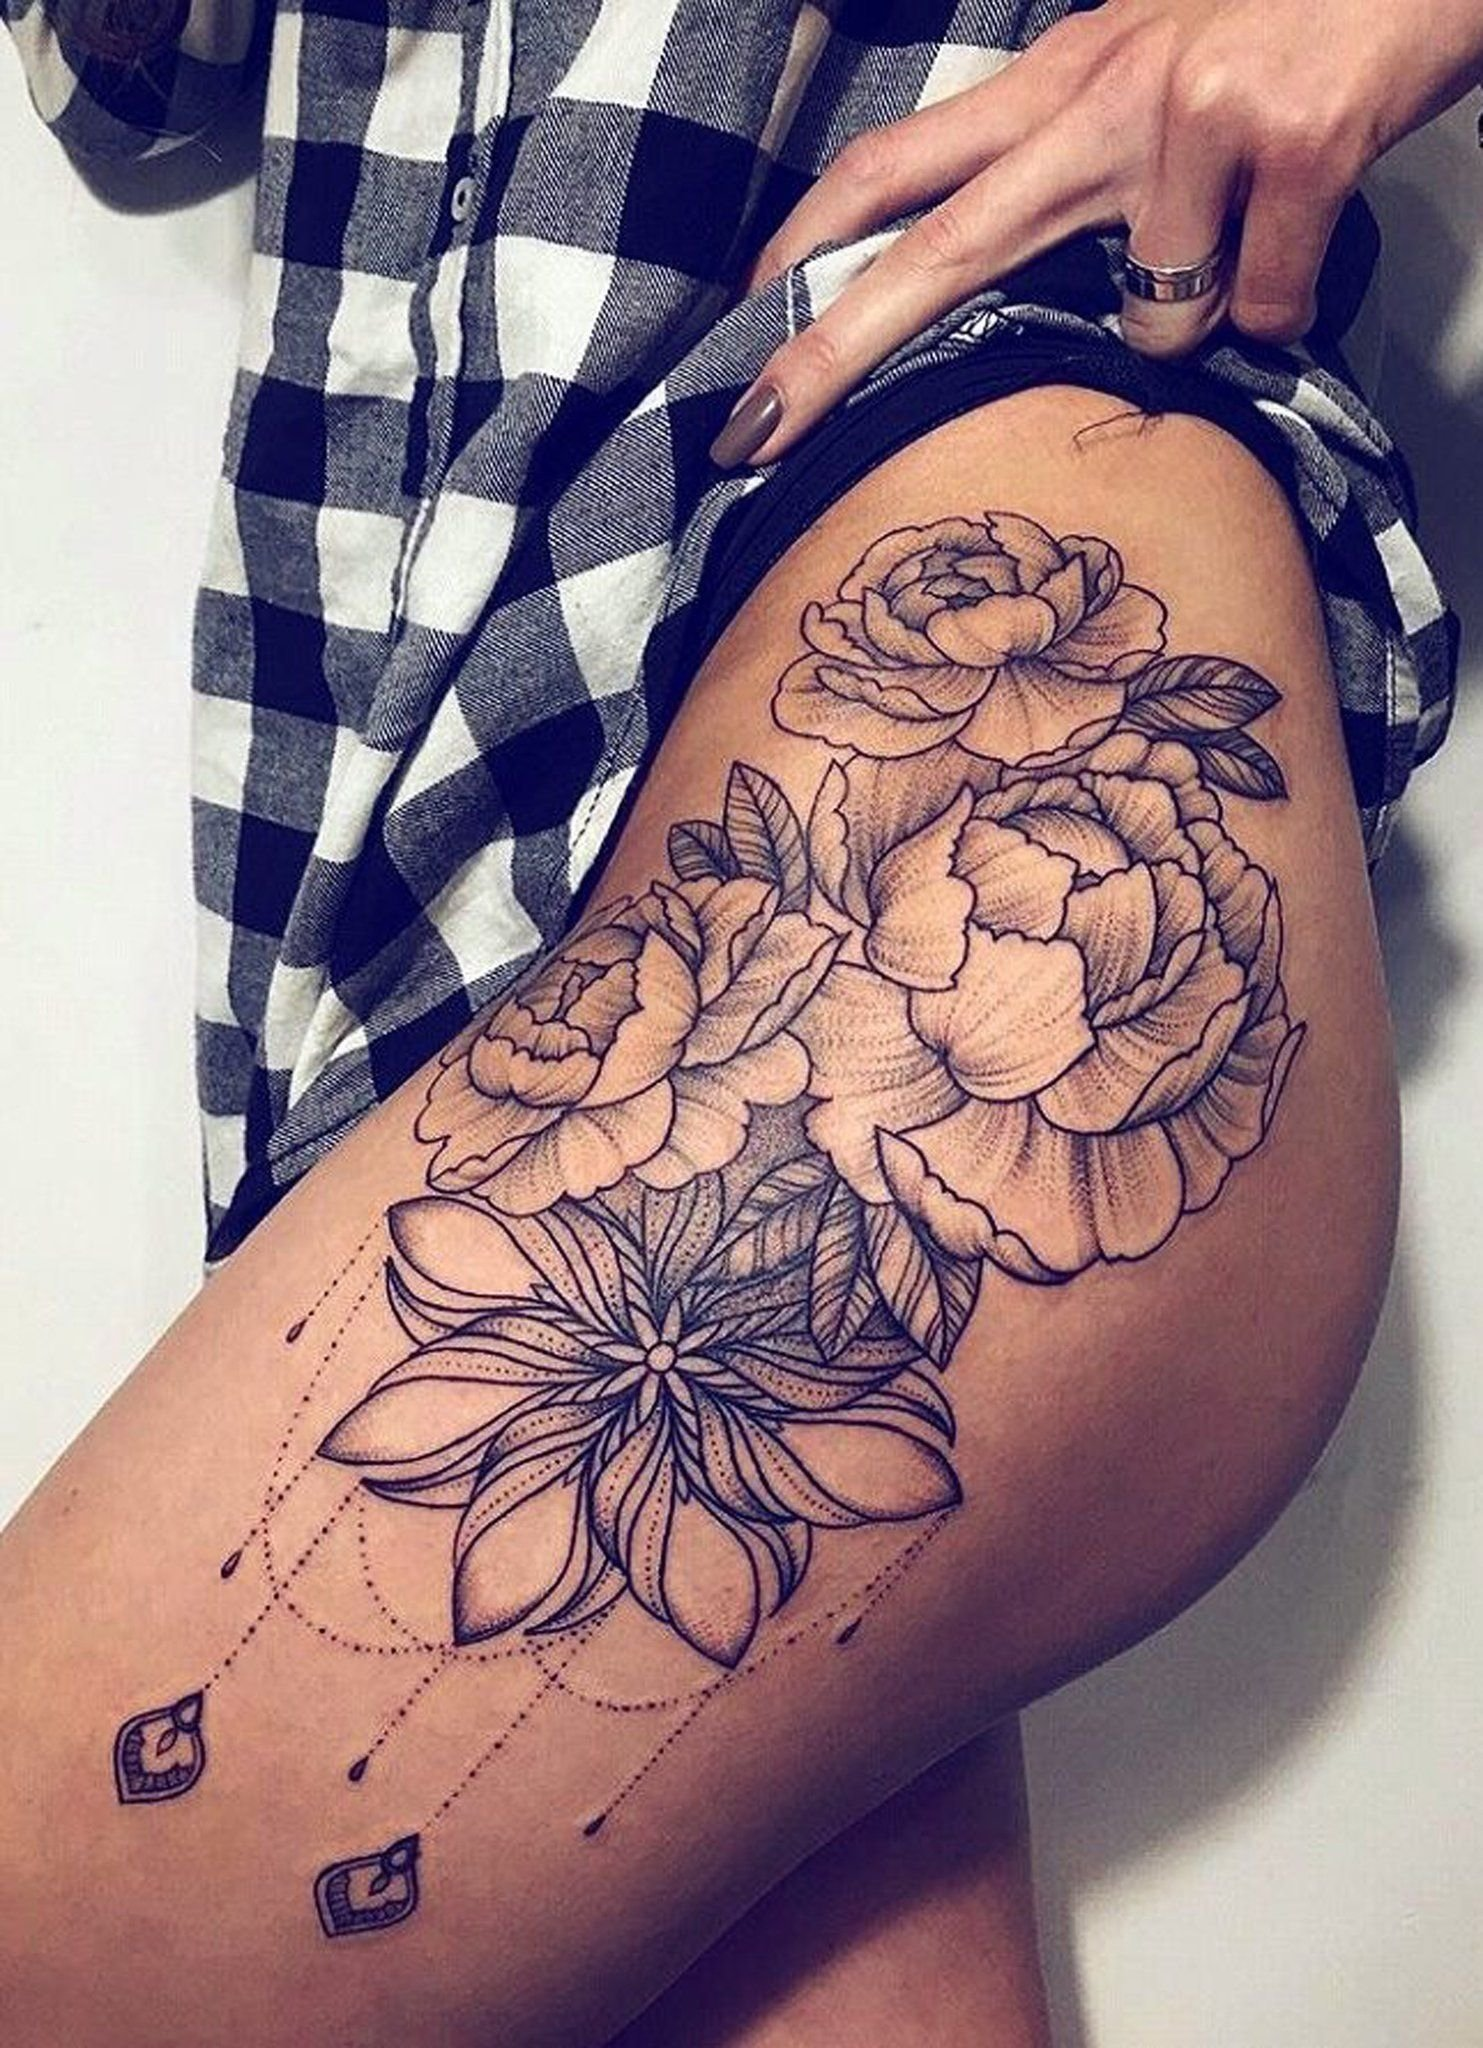 10 Attractive Hip Tattoo Ideas For Girls 30 womens badass hip tattoo ideas tattoo tatting and piercings 1 2020